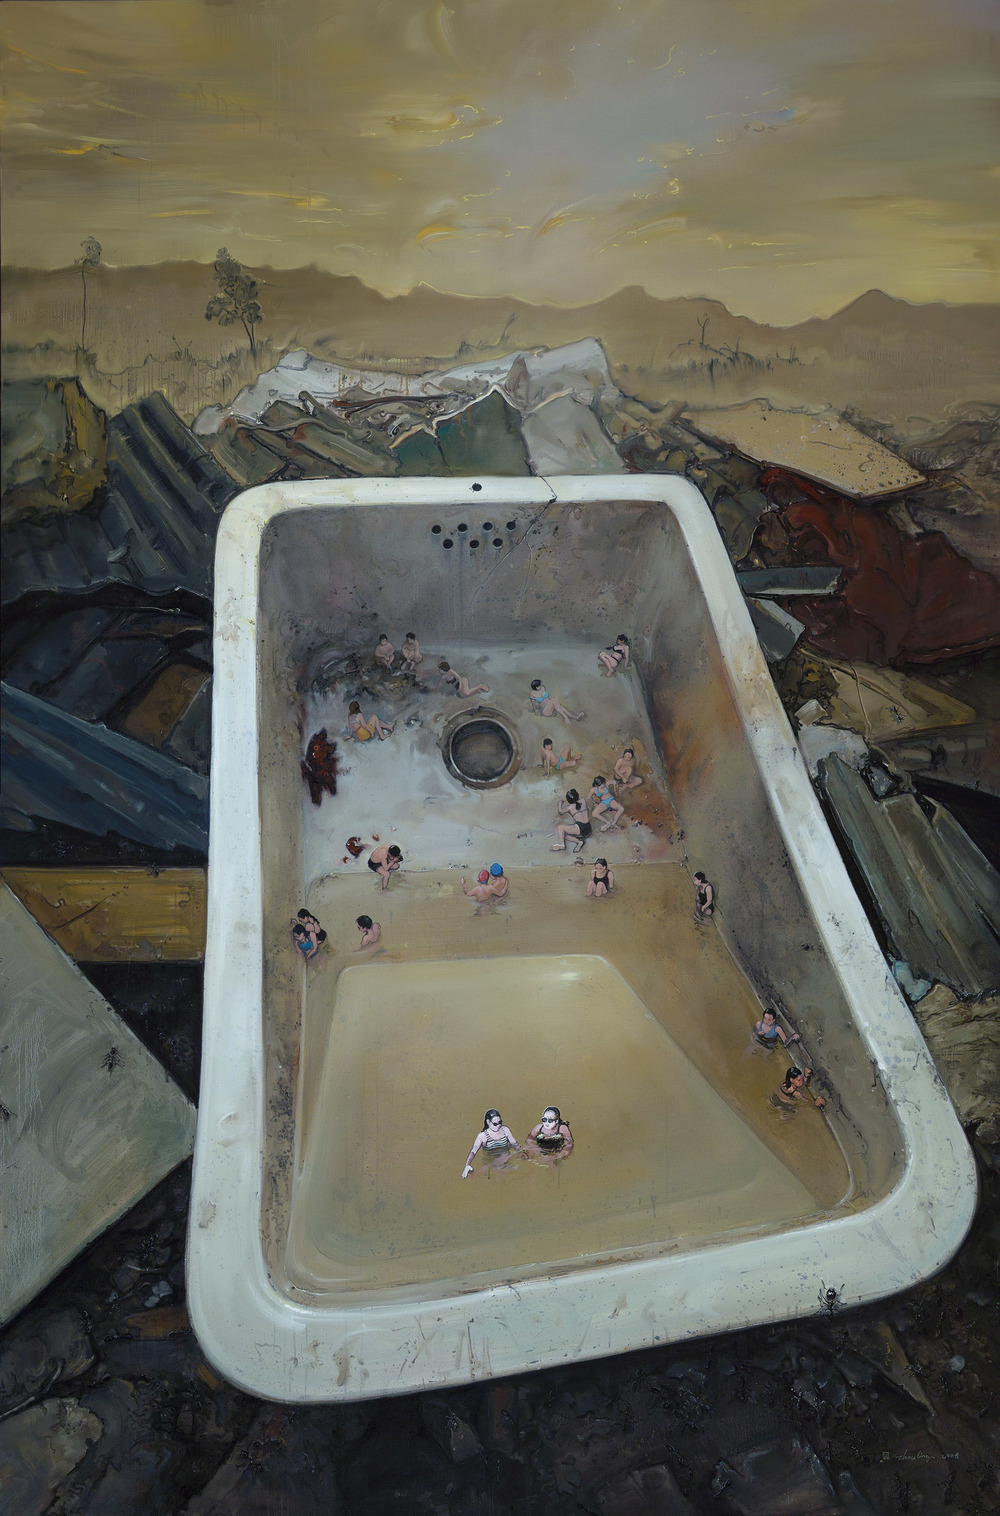 Zhou Jinhua 周金华, Golden Age No.9 黄金时代 No.9, 2008, Oil on canvas 布面油画, 300 x 200 cm